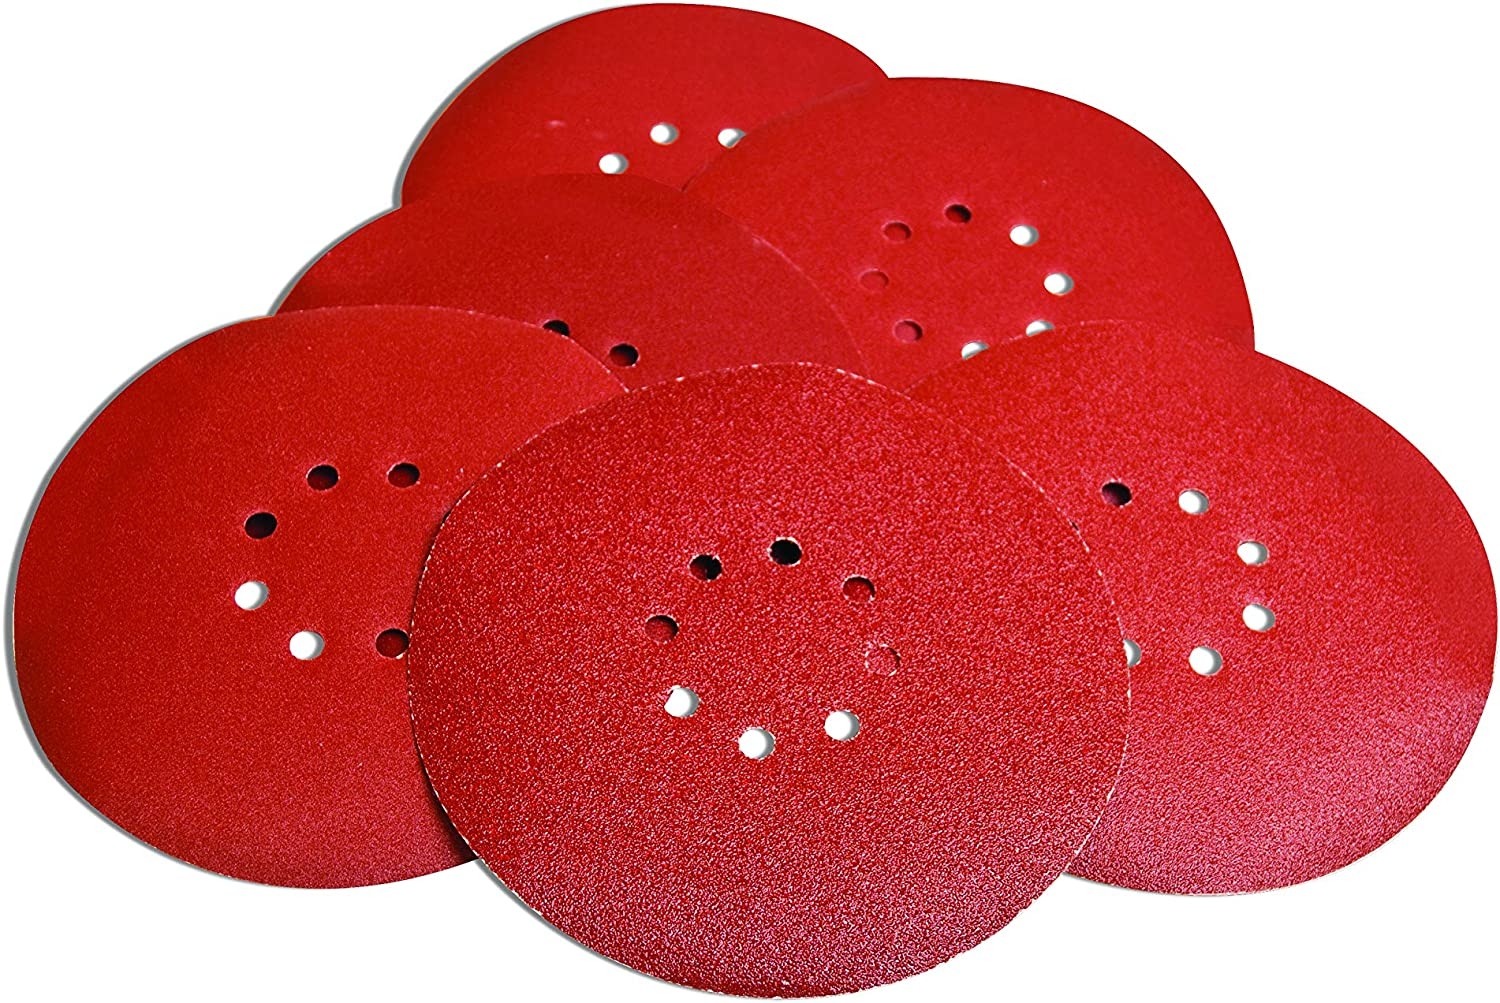 240 Grit Evolution Power Tools Telescopic Dry Wall Sander with Set of 6 Sanding Discs